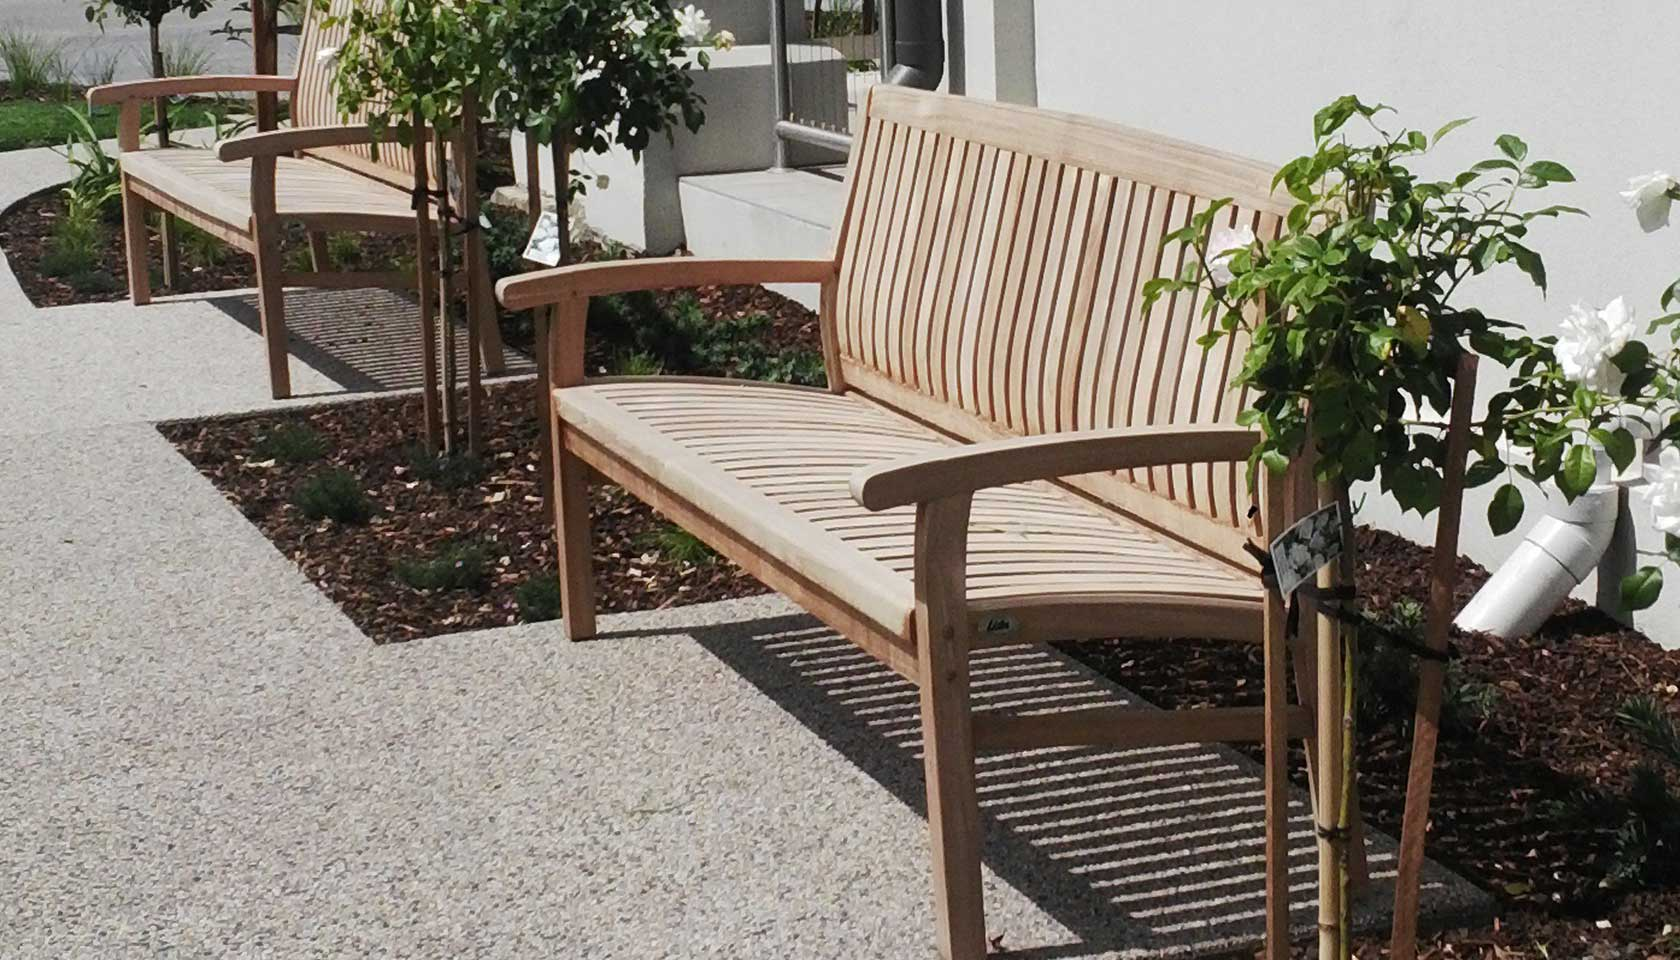 Lister Teak Garden Furniture - Teak Benches, Loungers ...